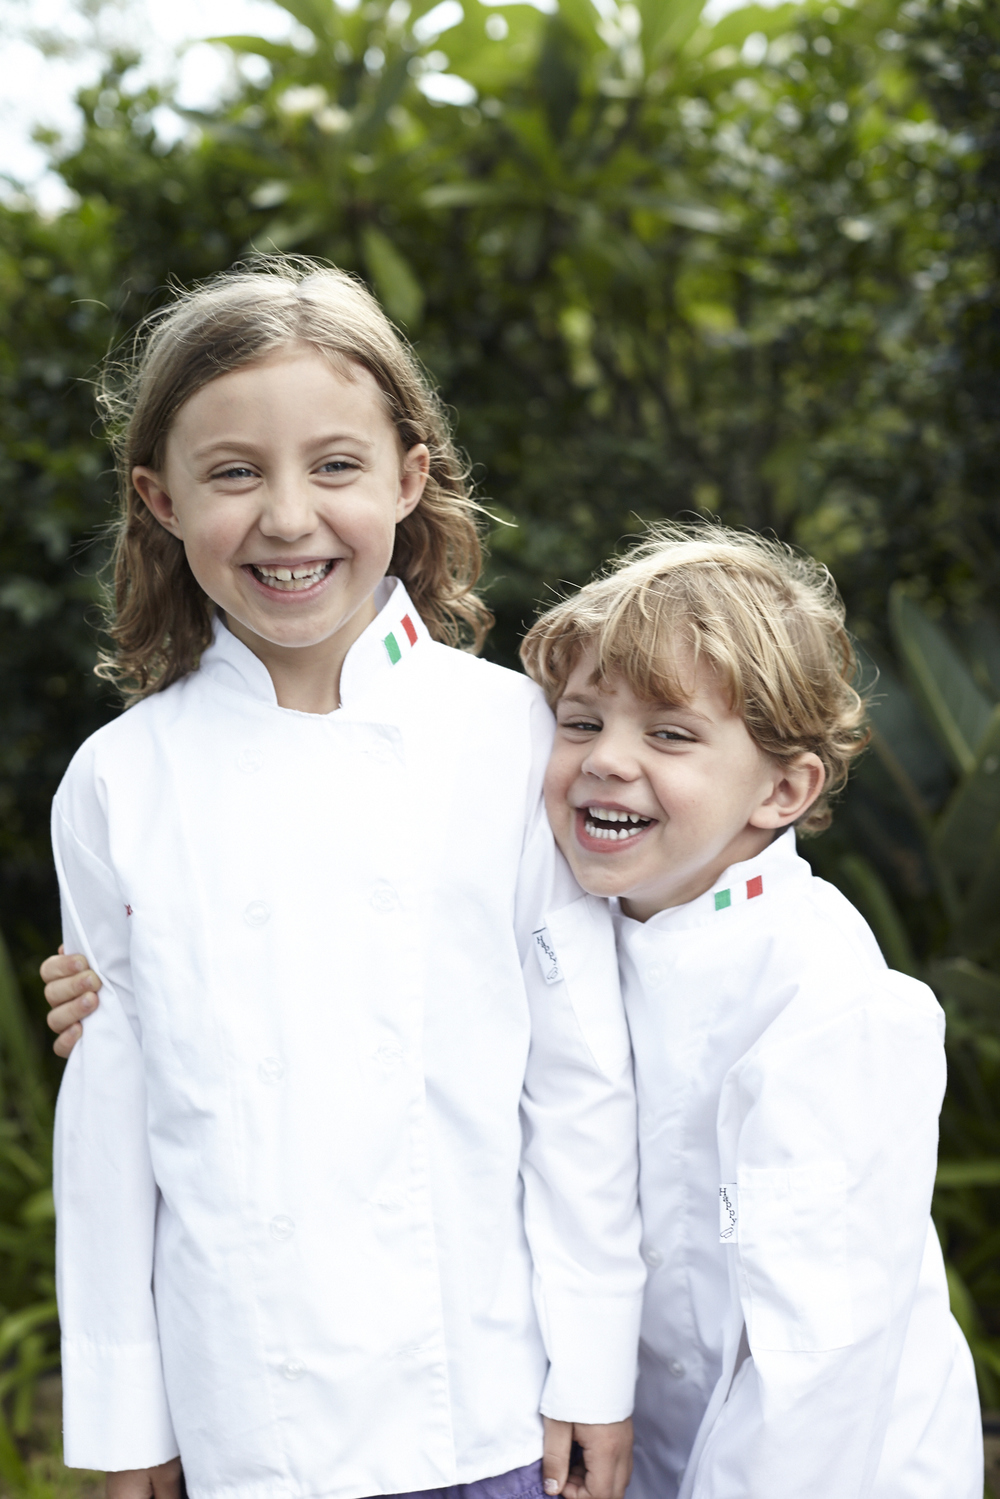 My two little chefs Felix and Coco. I love this picture by Julie Adams